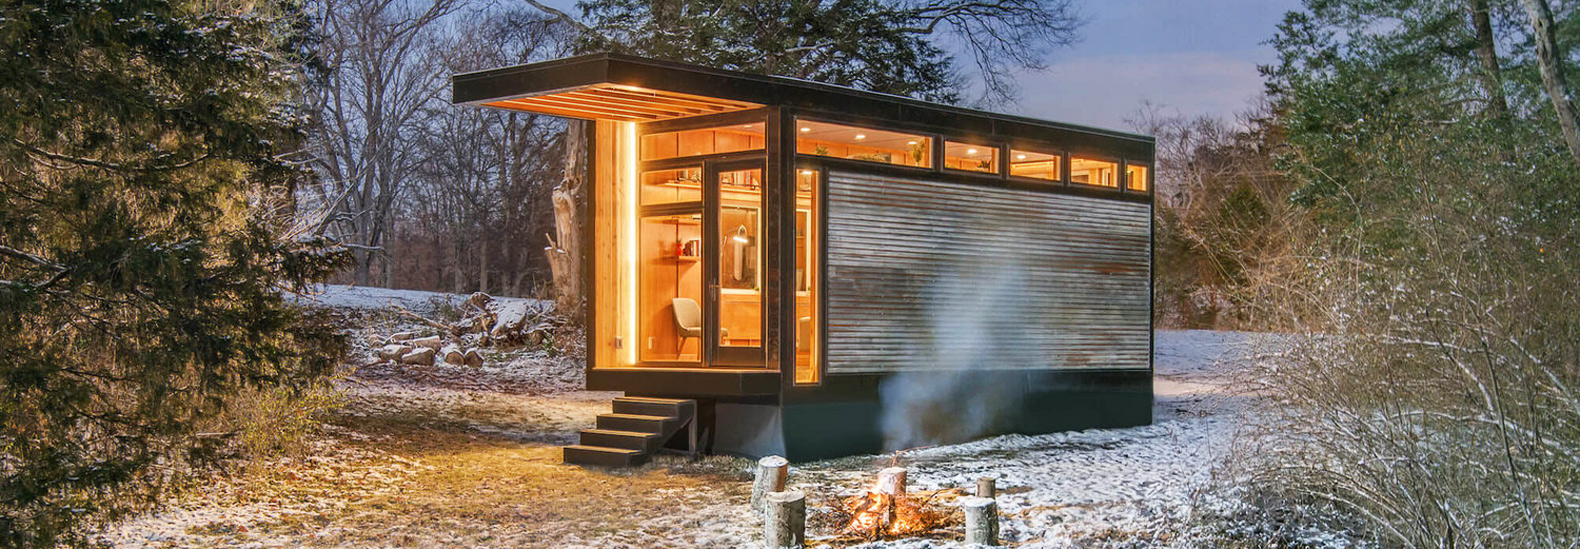 The Ultimate Mini Guide On Building Your Own Tiny Home